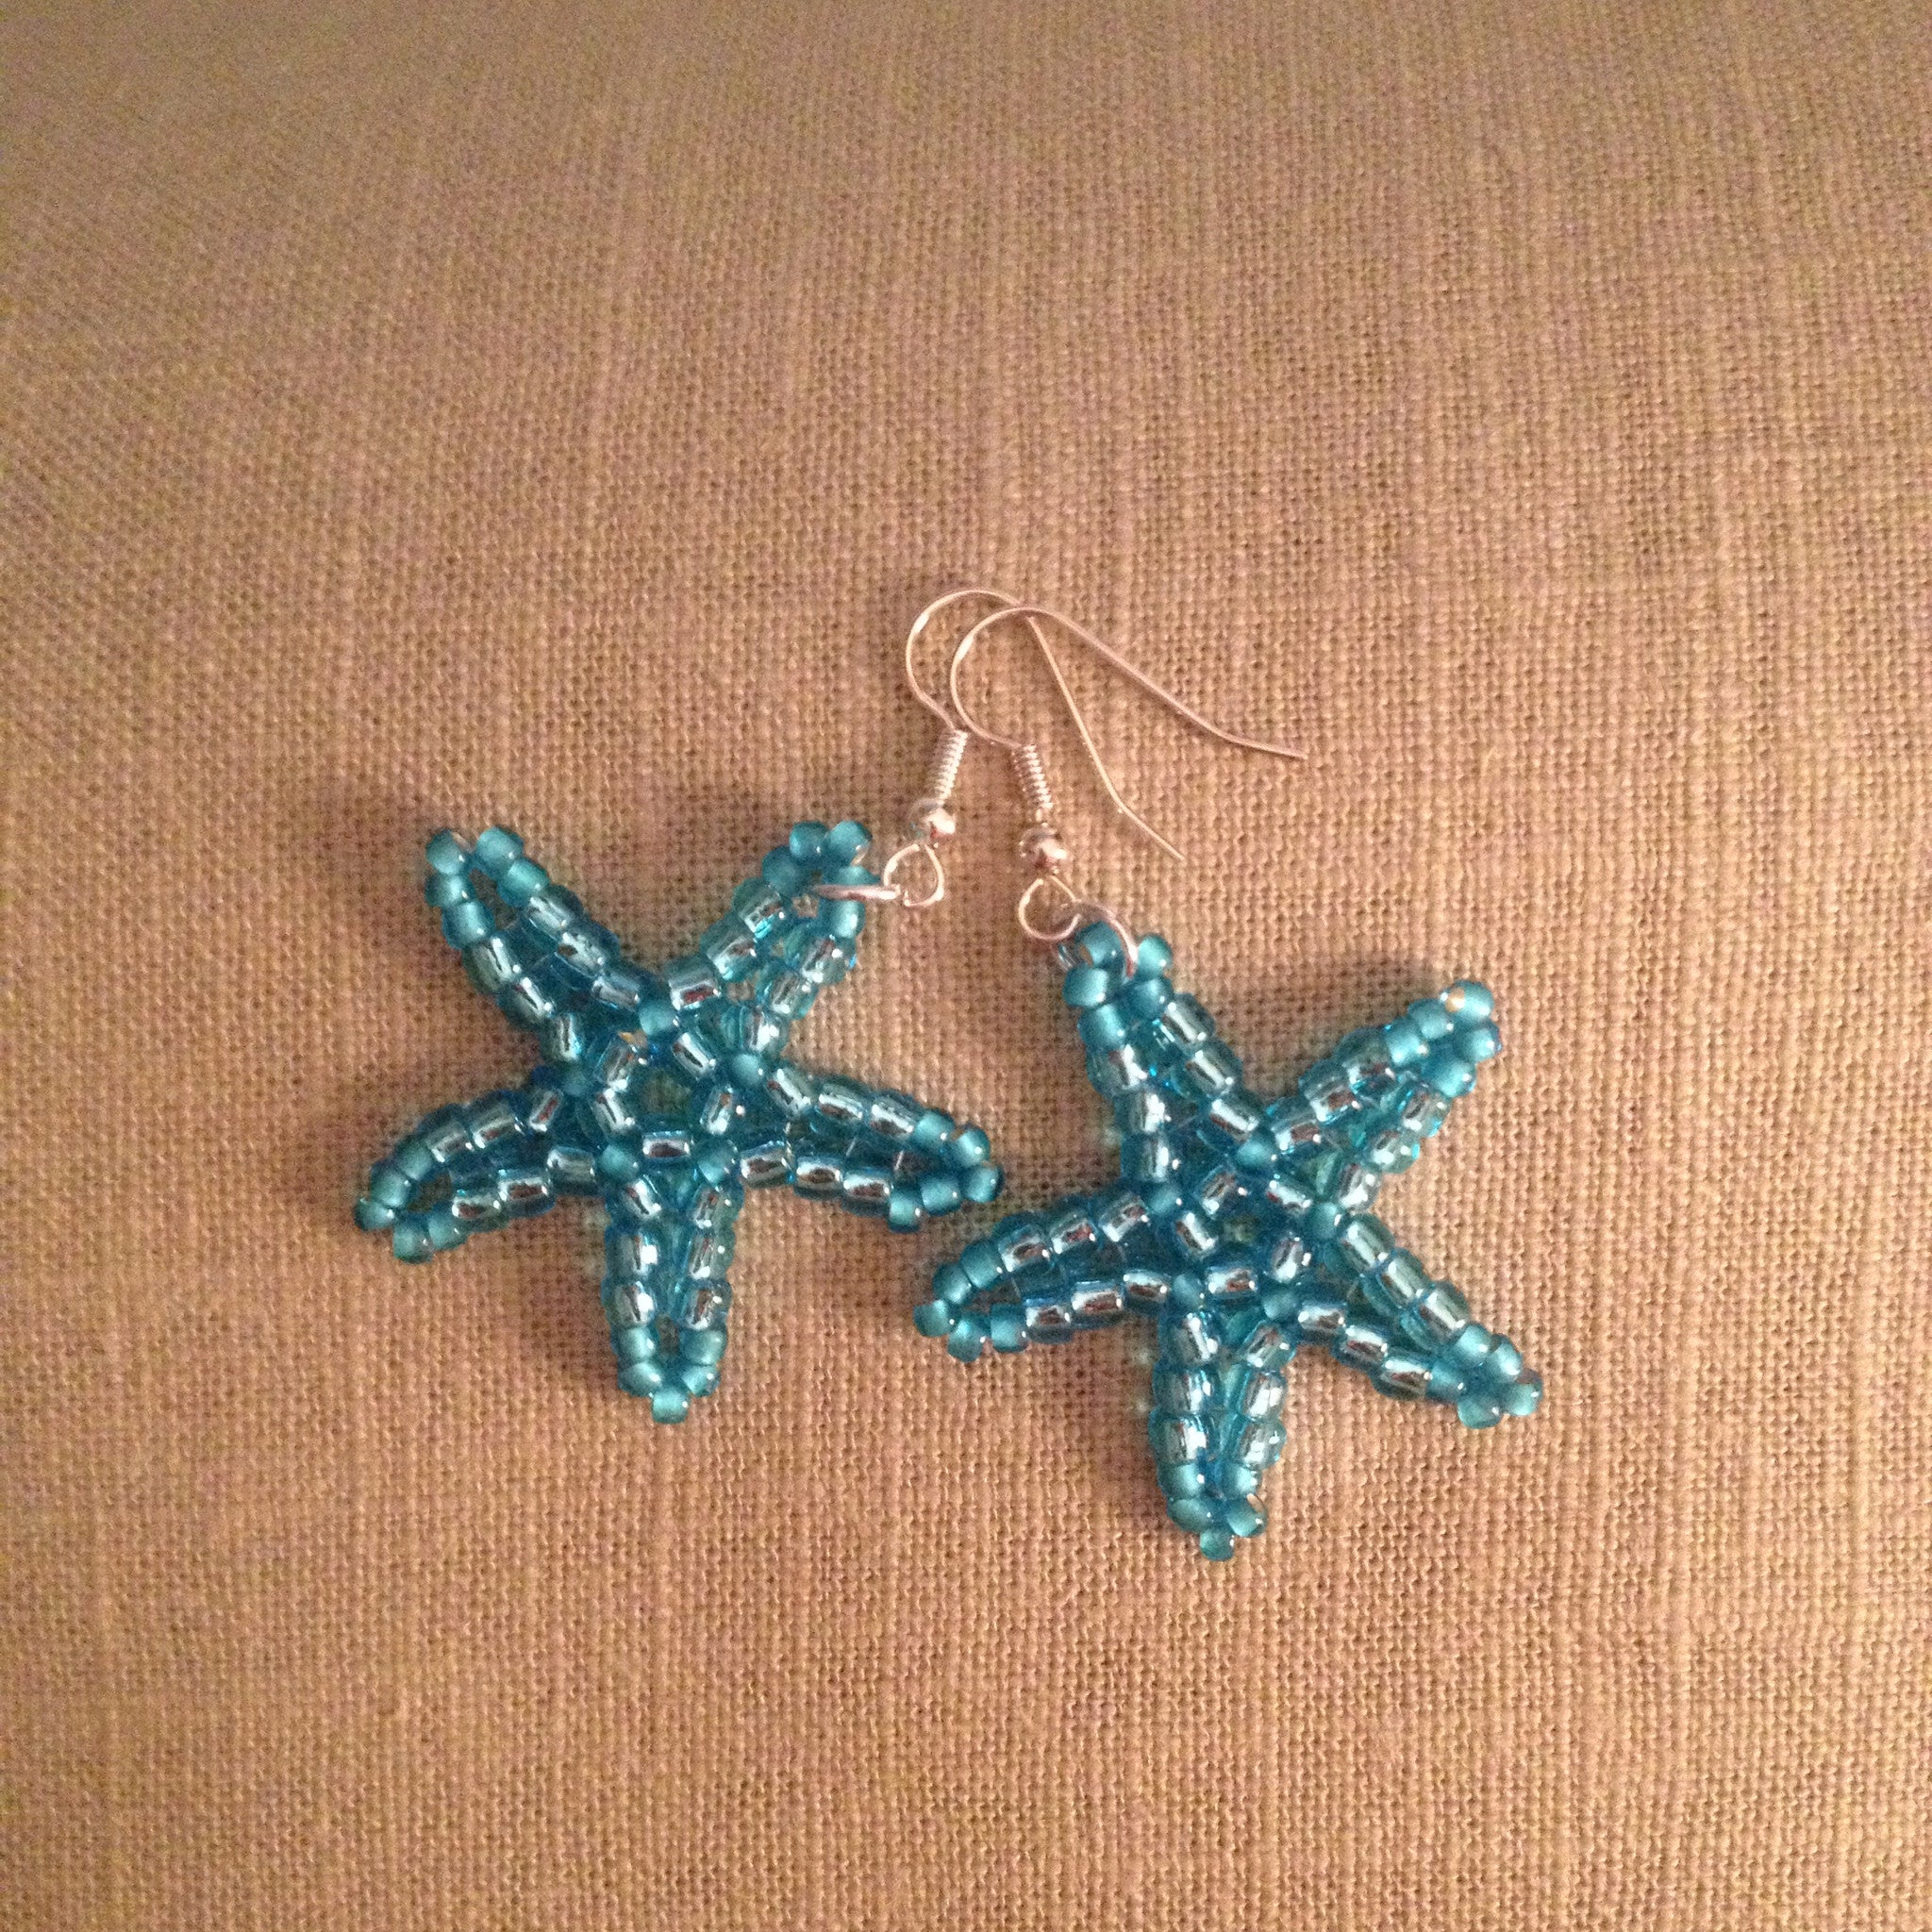 Starfish Beaded handmade earrings crystal blue resort cruise wear beachy fun style